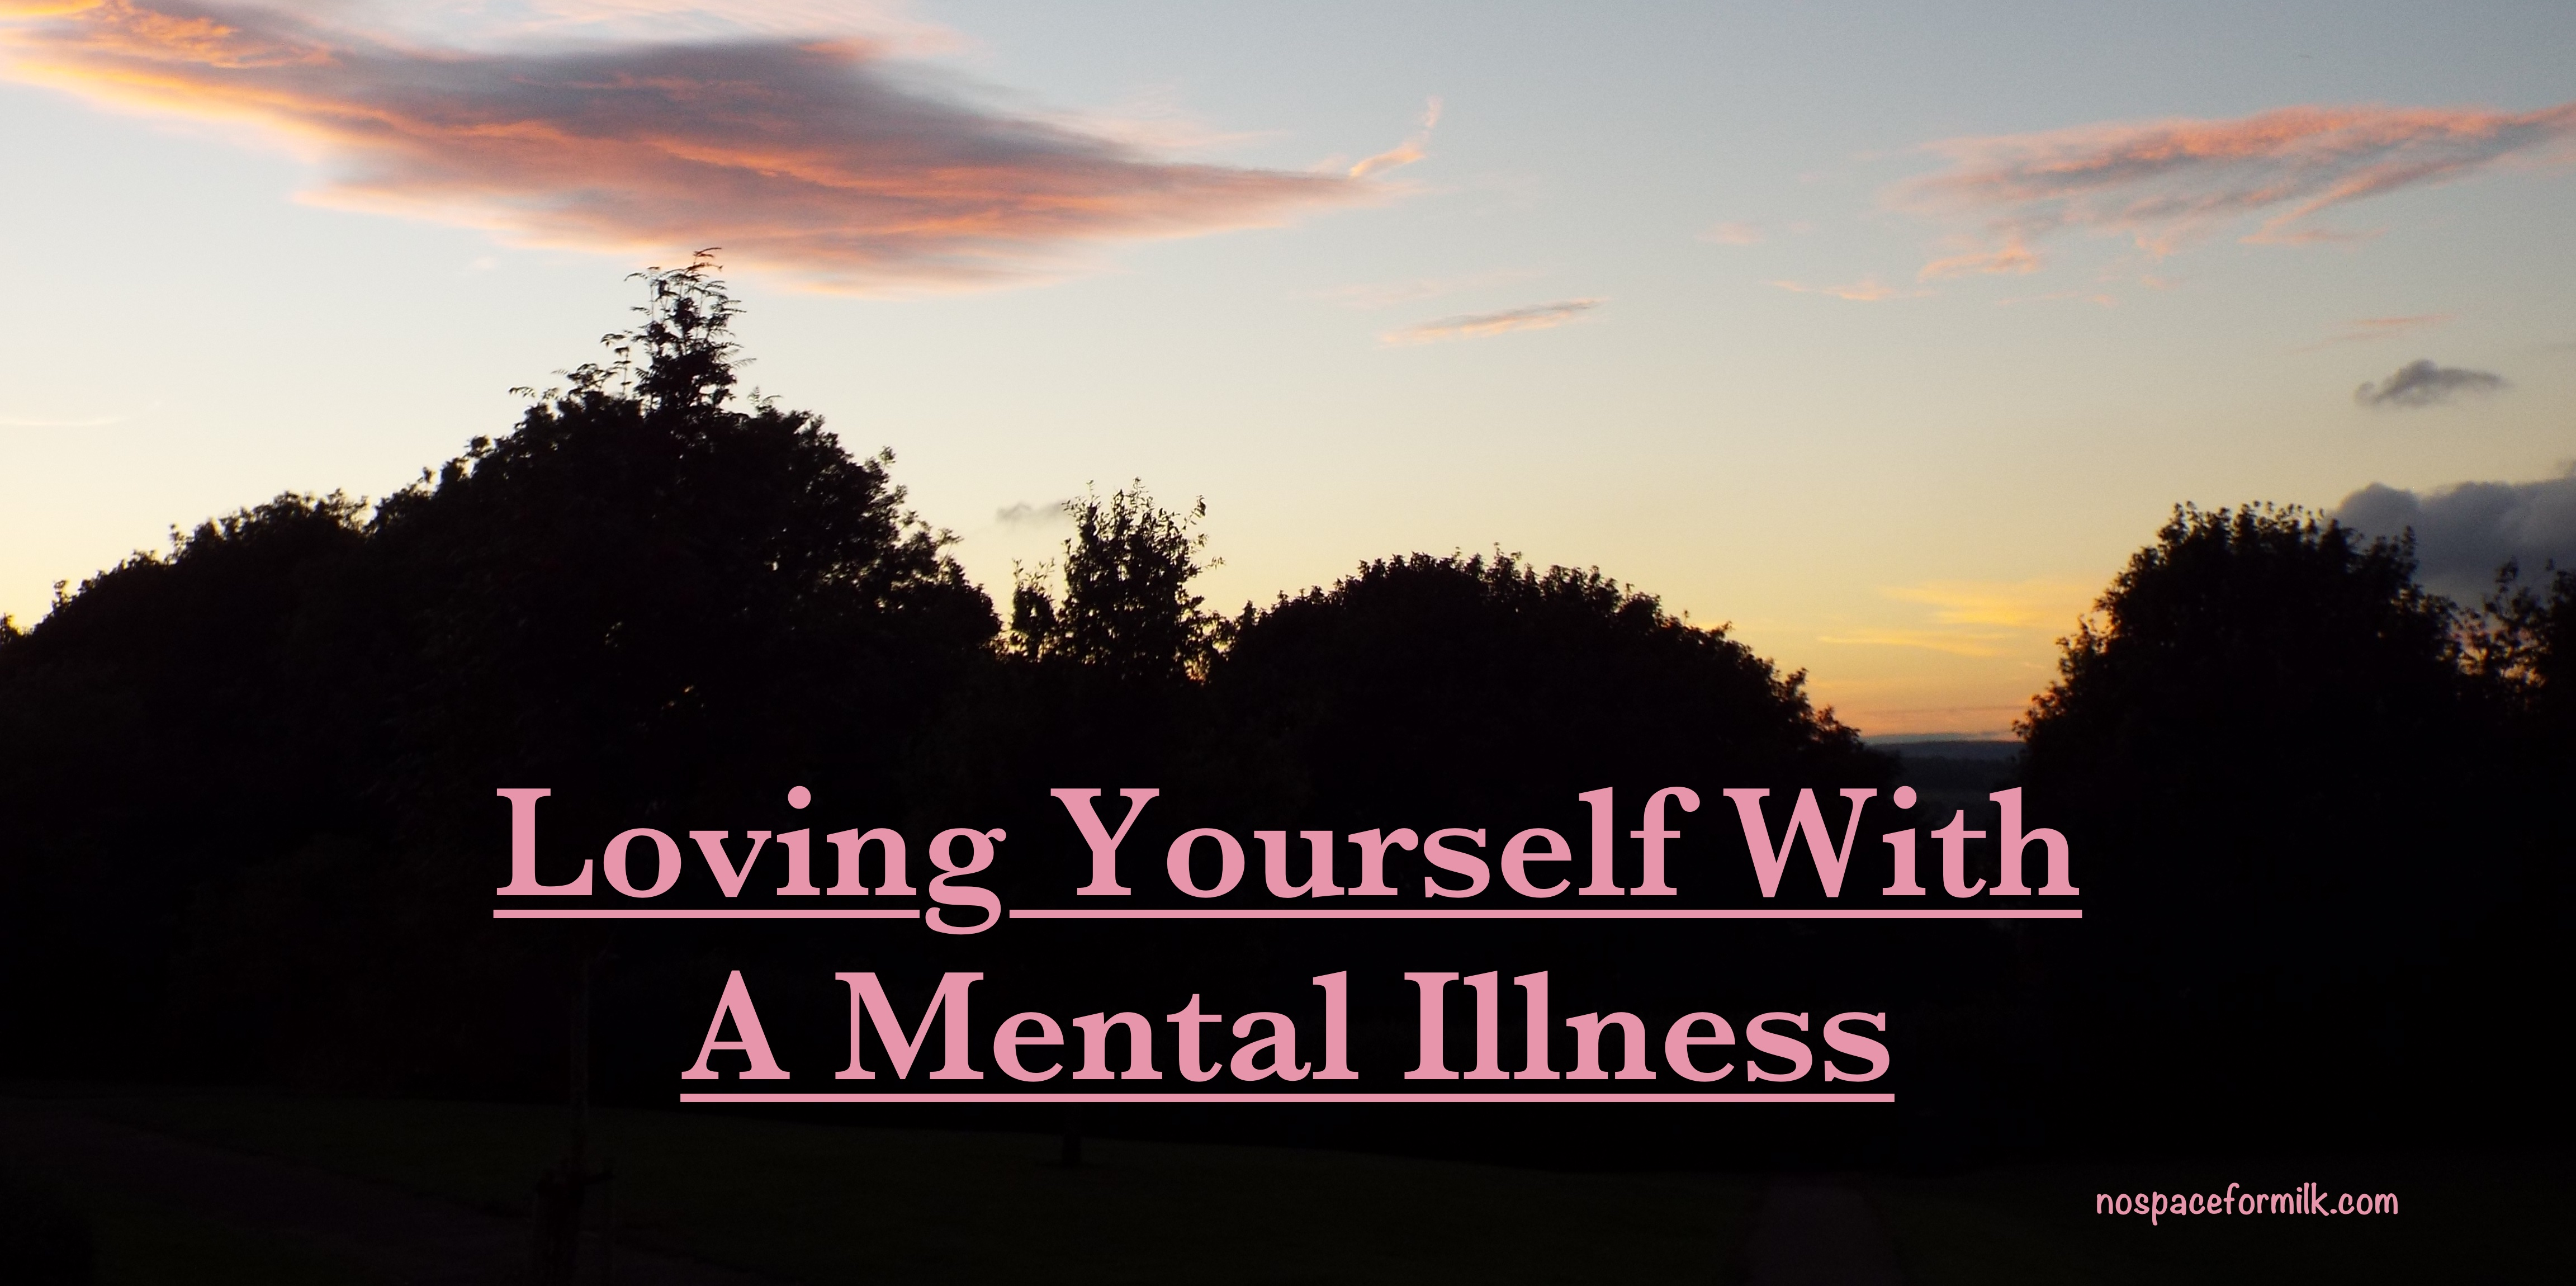 Loving Yourself with a Mental Illness